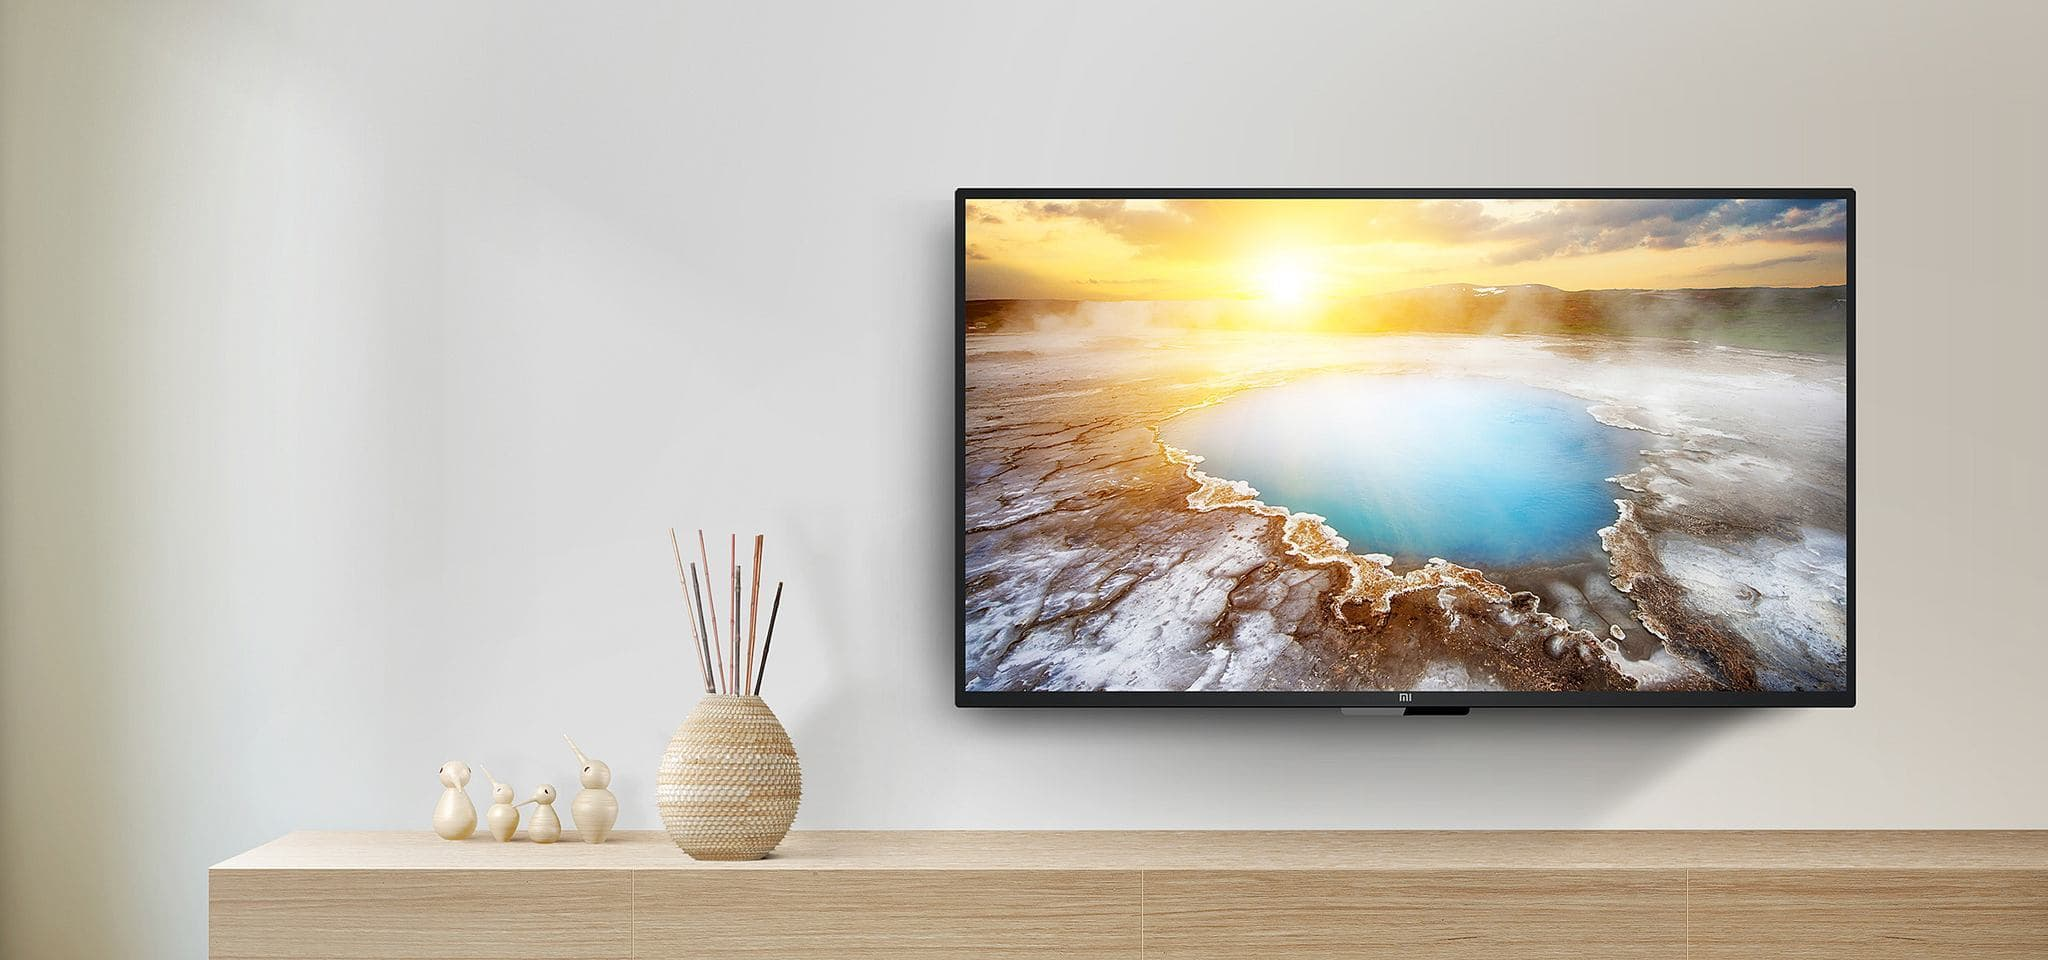 Xiaomi Launched Mi TV 4A 40 Inch Model With Voice Voice